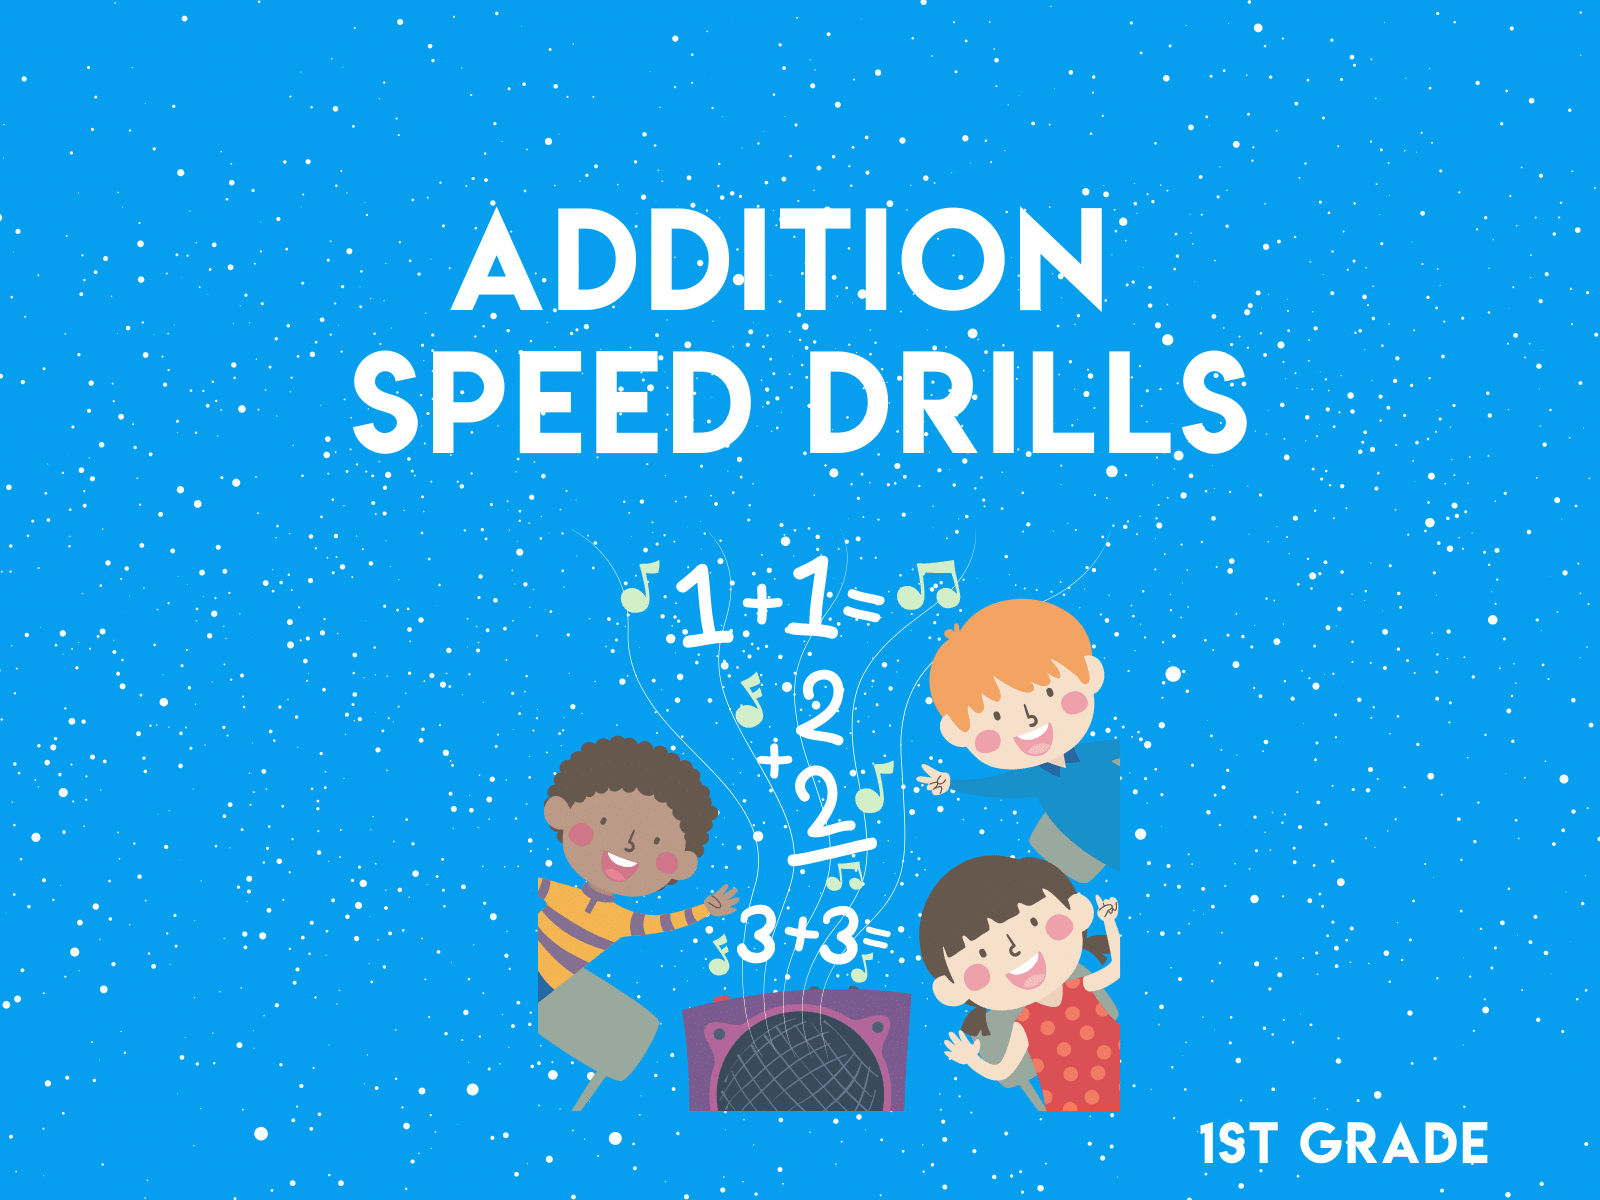 Try these addition speed drill with our free learning resource for first grade.